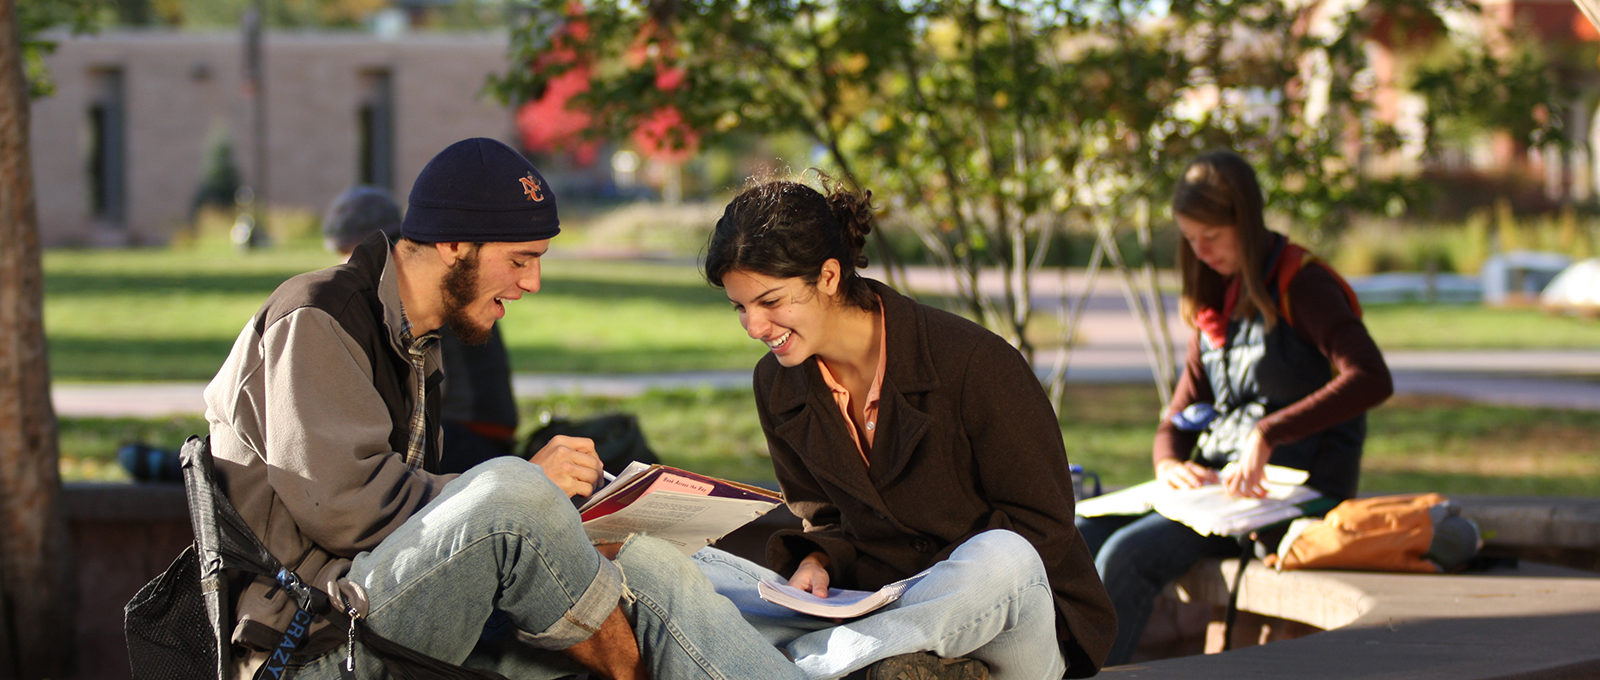 Students studying at fire ring